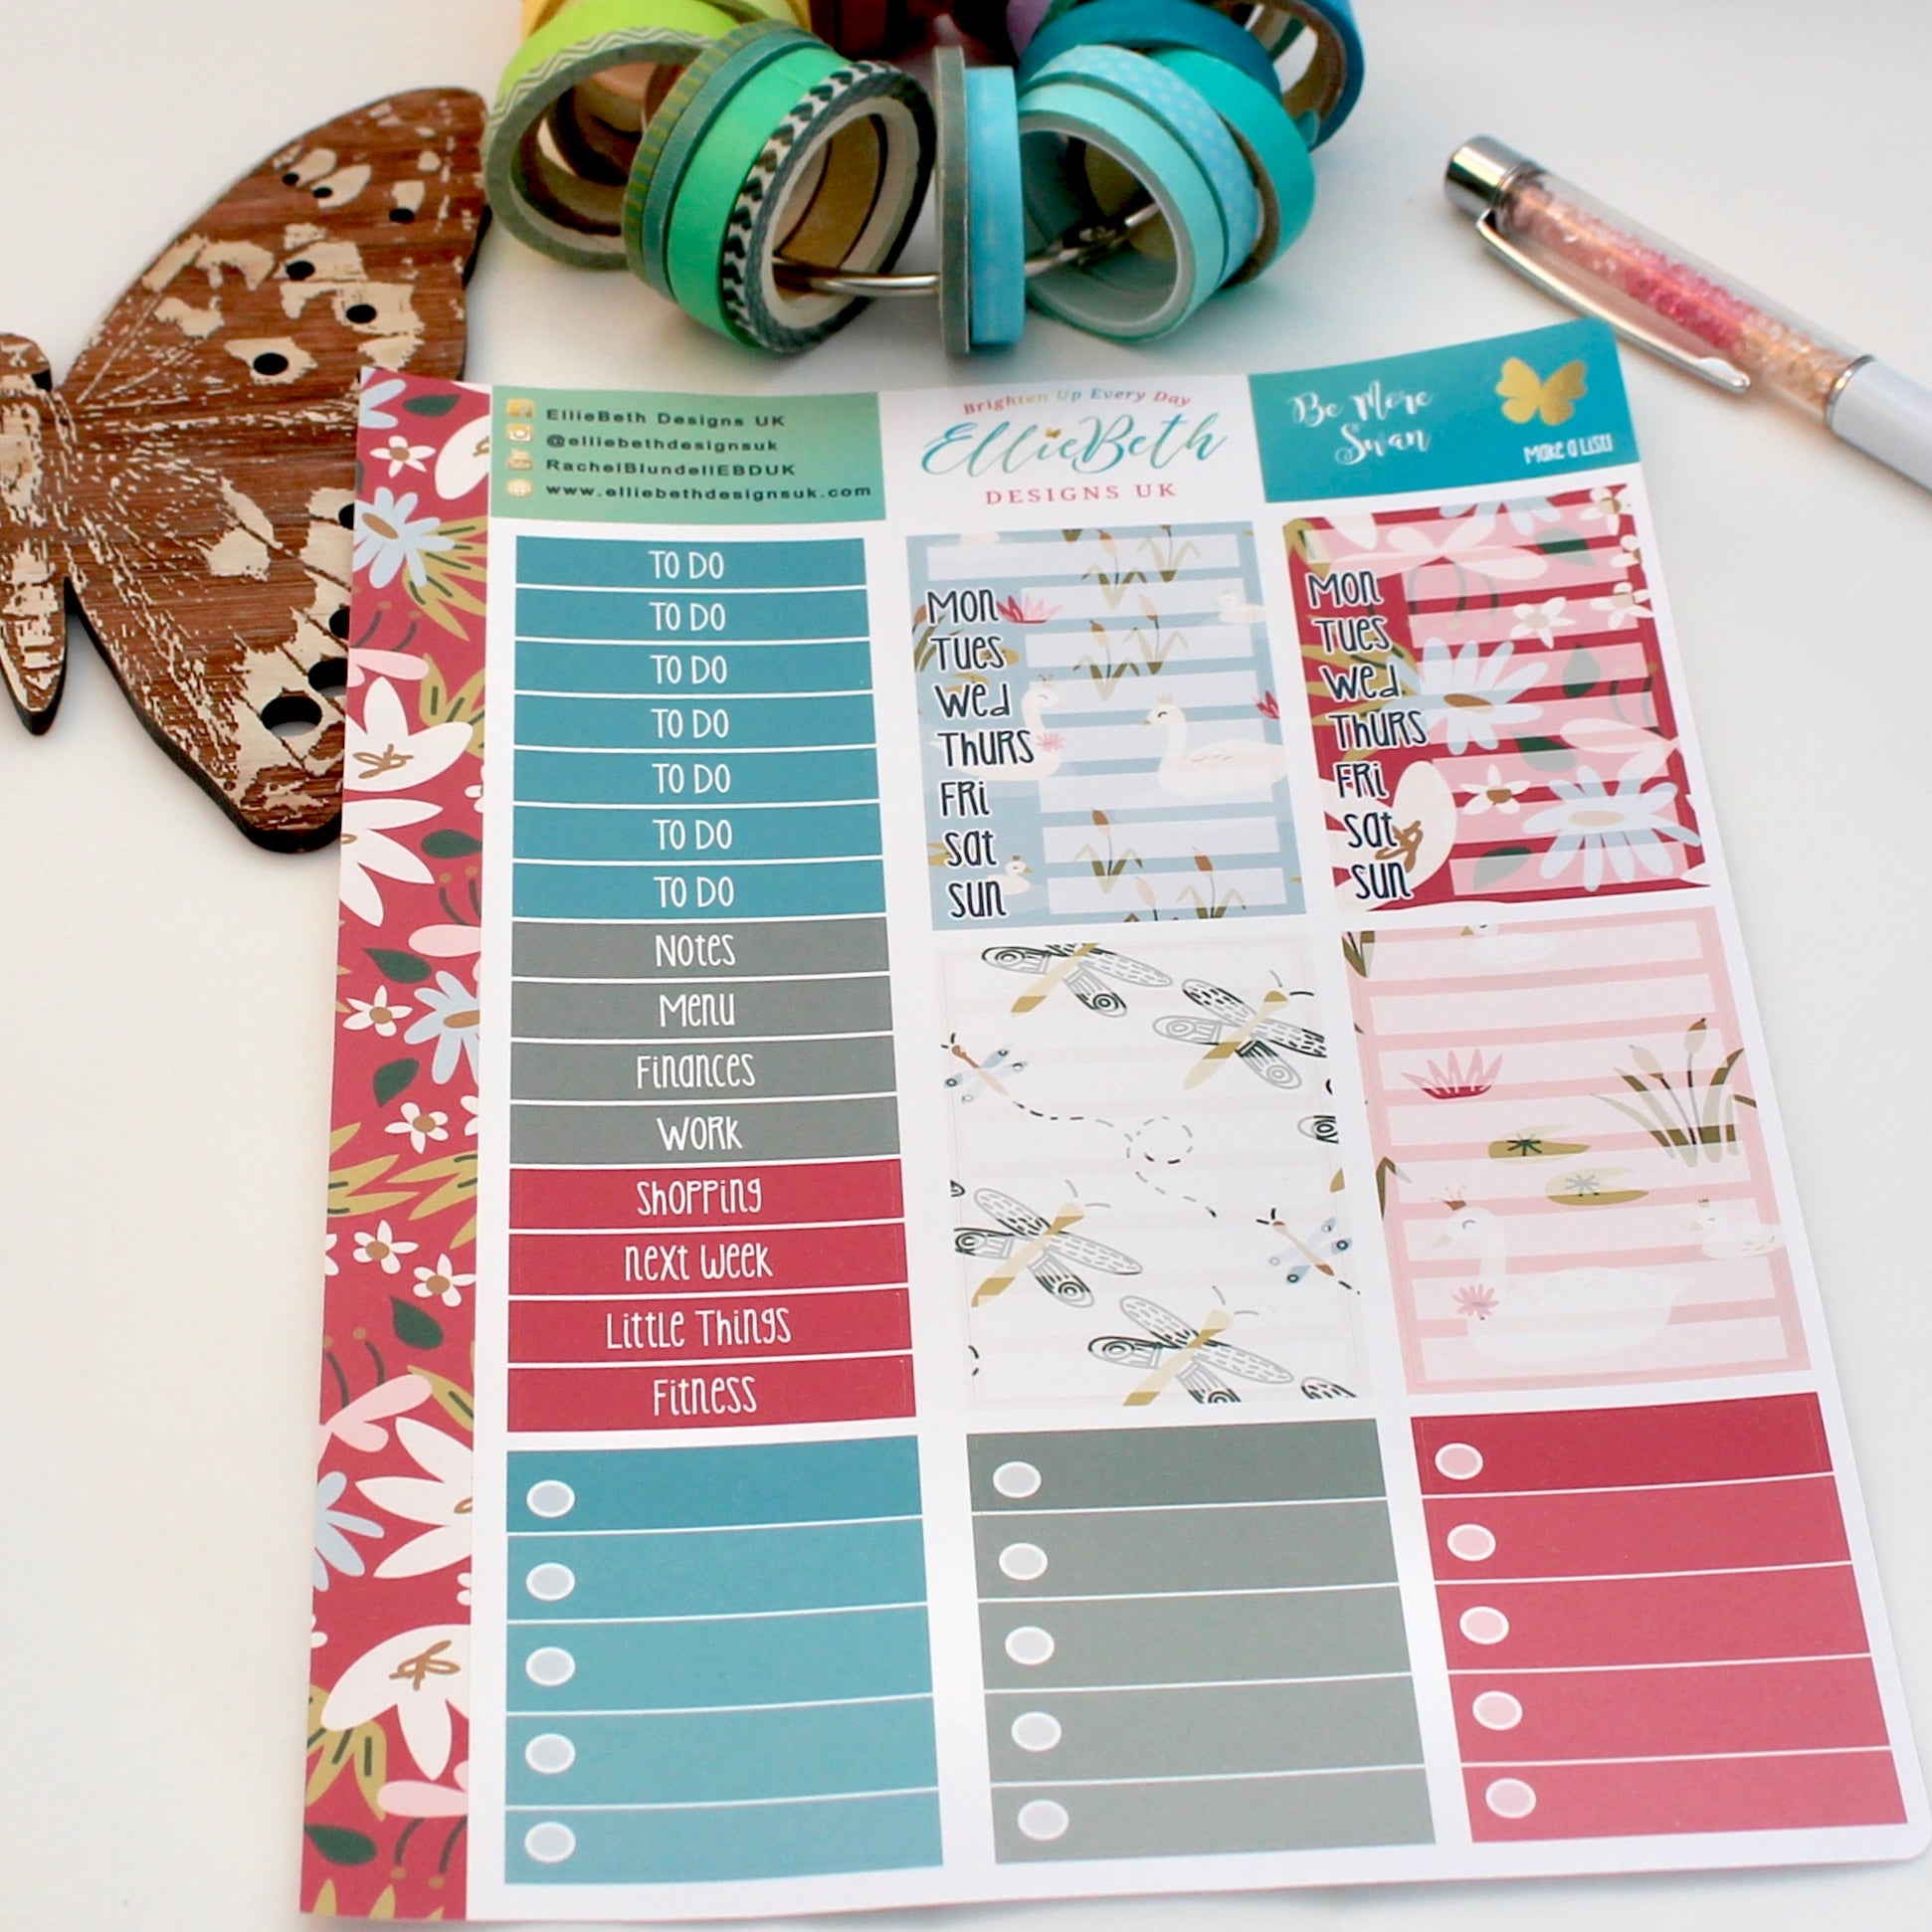 'Be More Swan' - Make a List Sheet -  A5 binder ready planner stickers - EllieBeth Designs UK